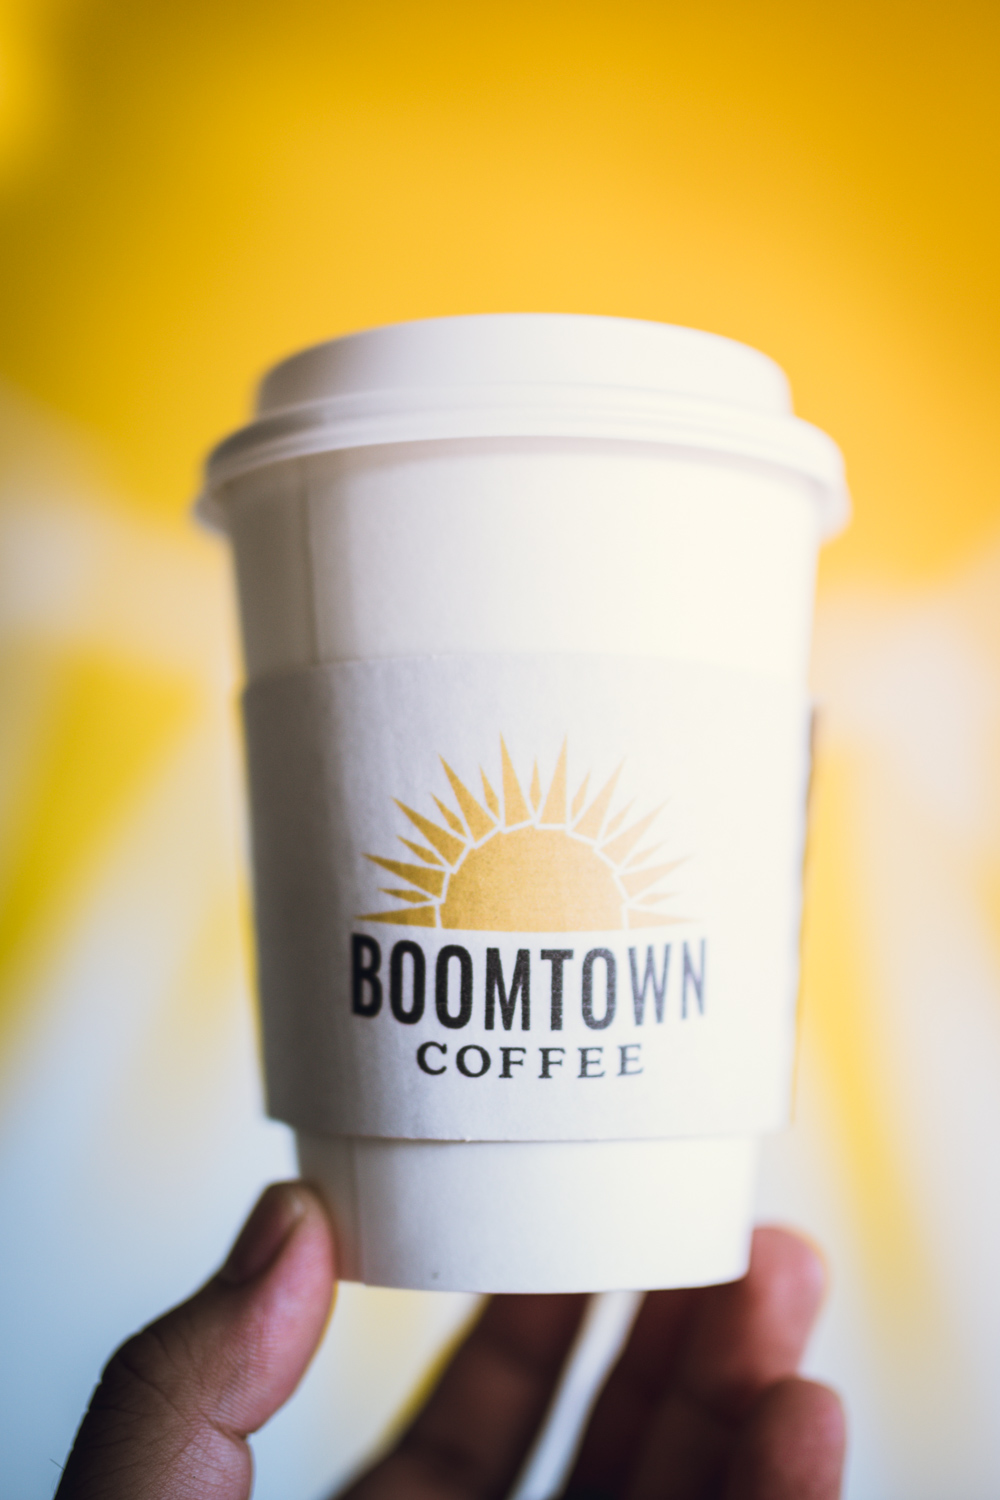 Boomtown coffee to go cup